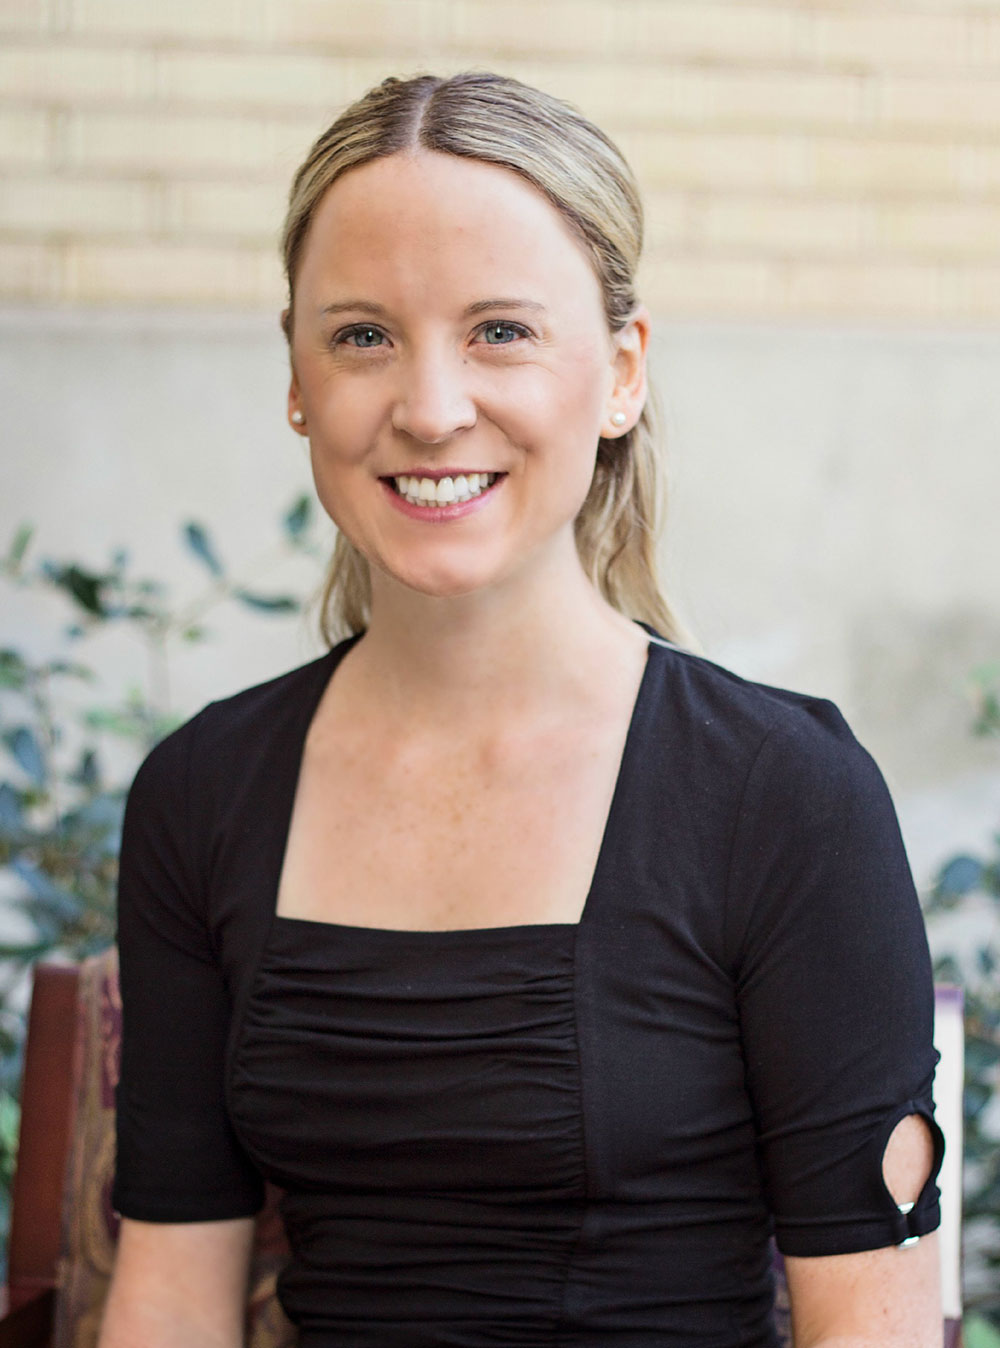 Novel Approach Earns Usu Assistant Professor National Recognition | CEHS